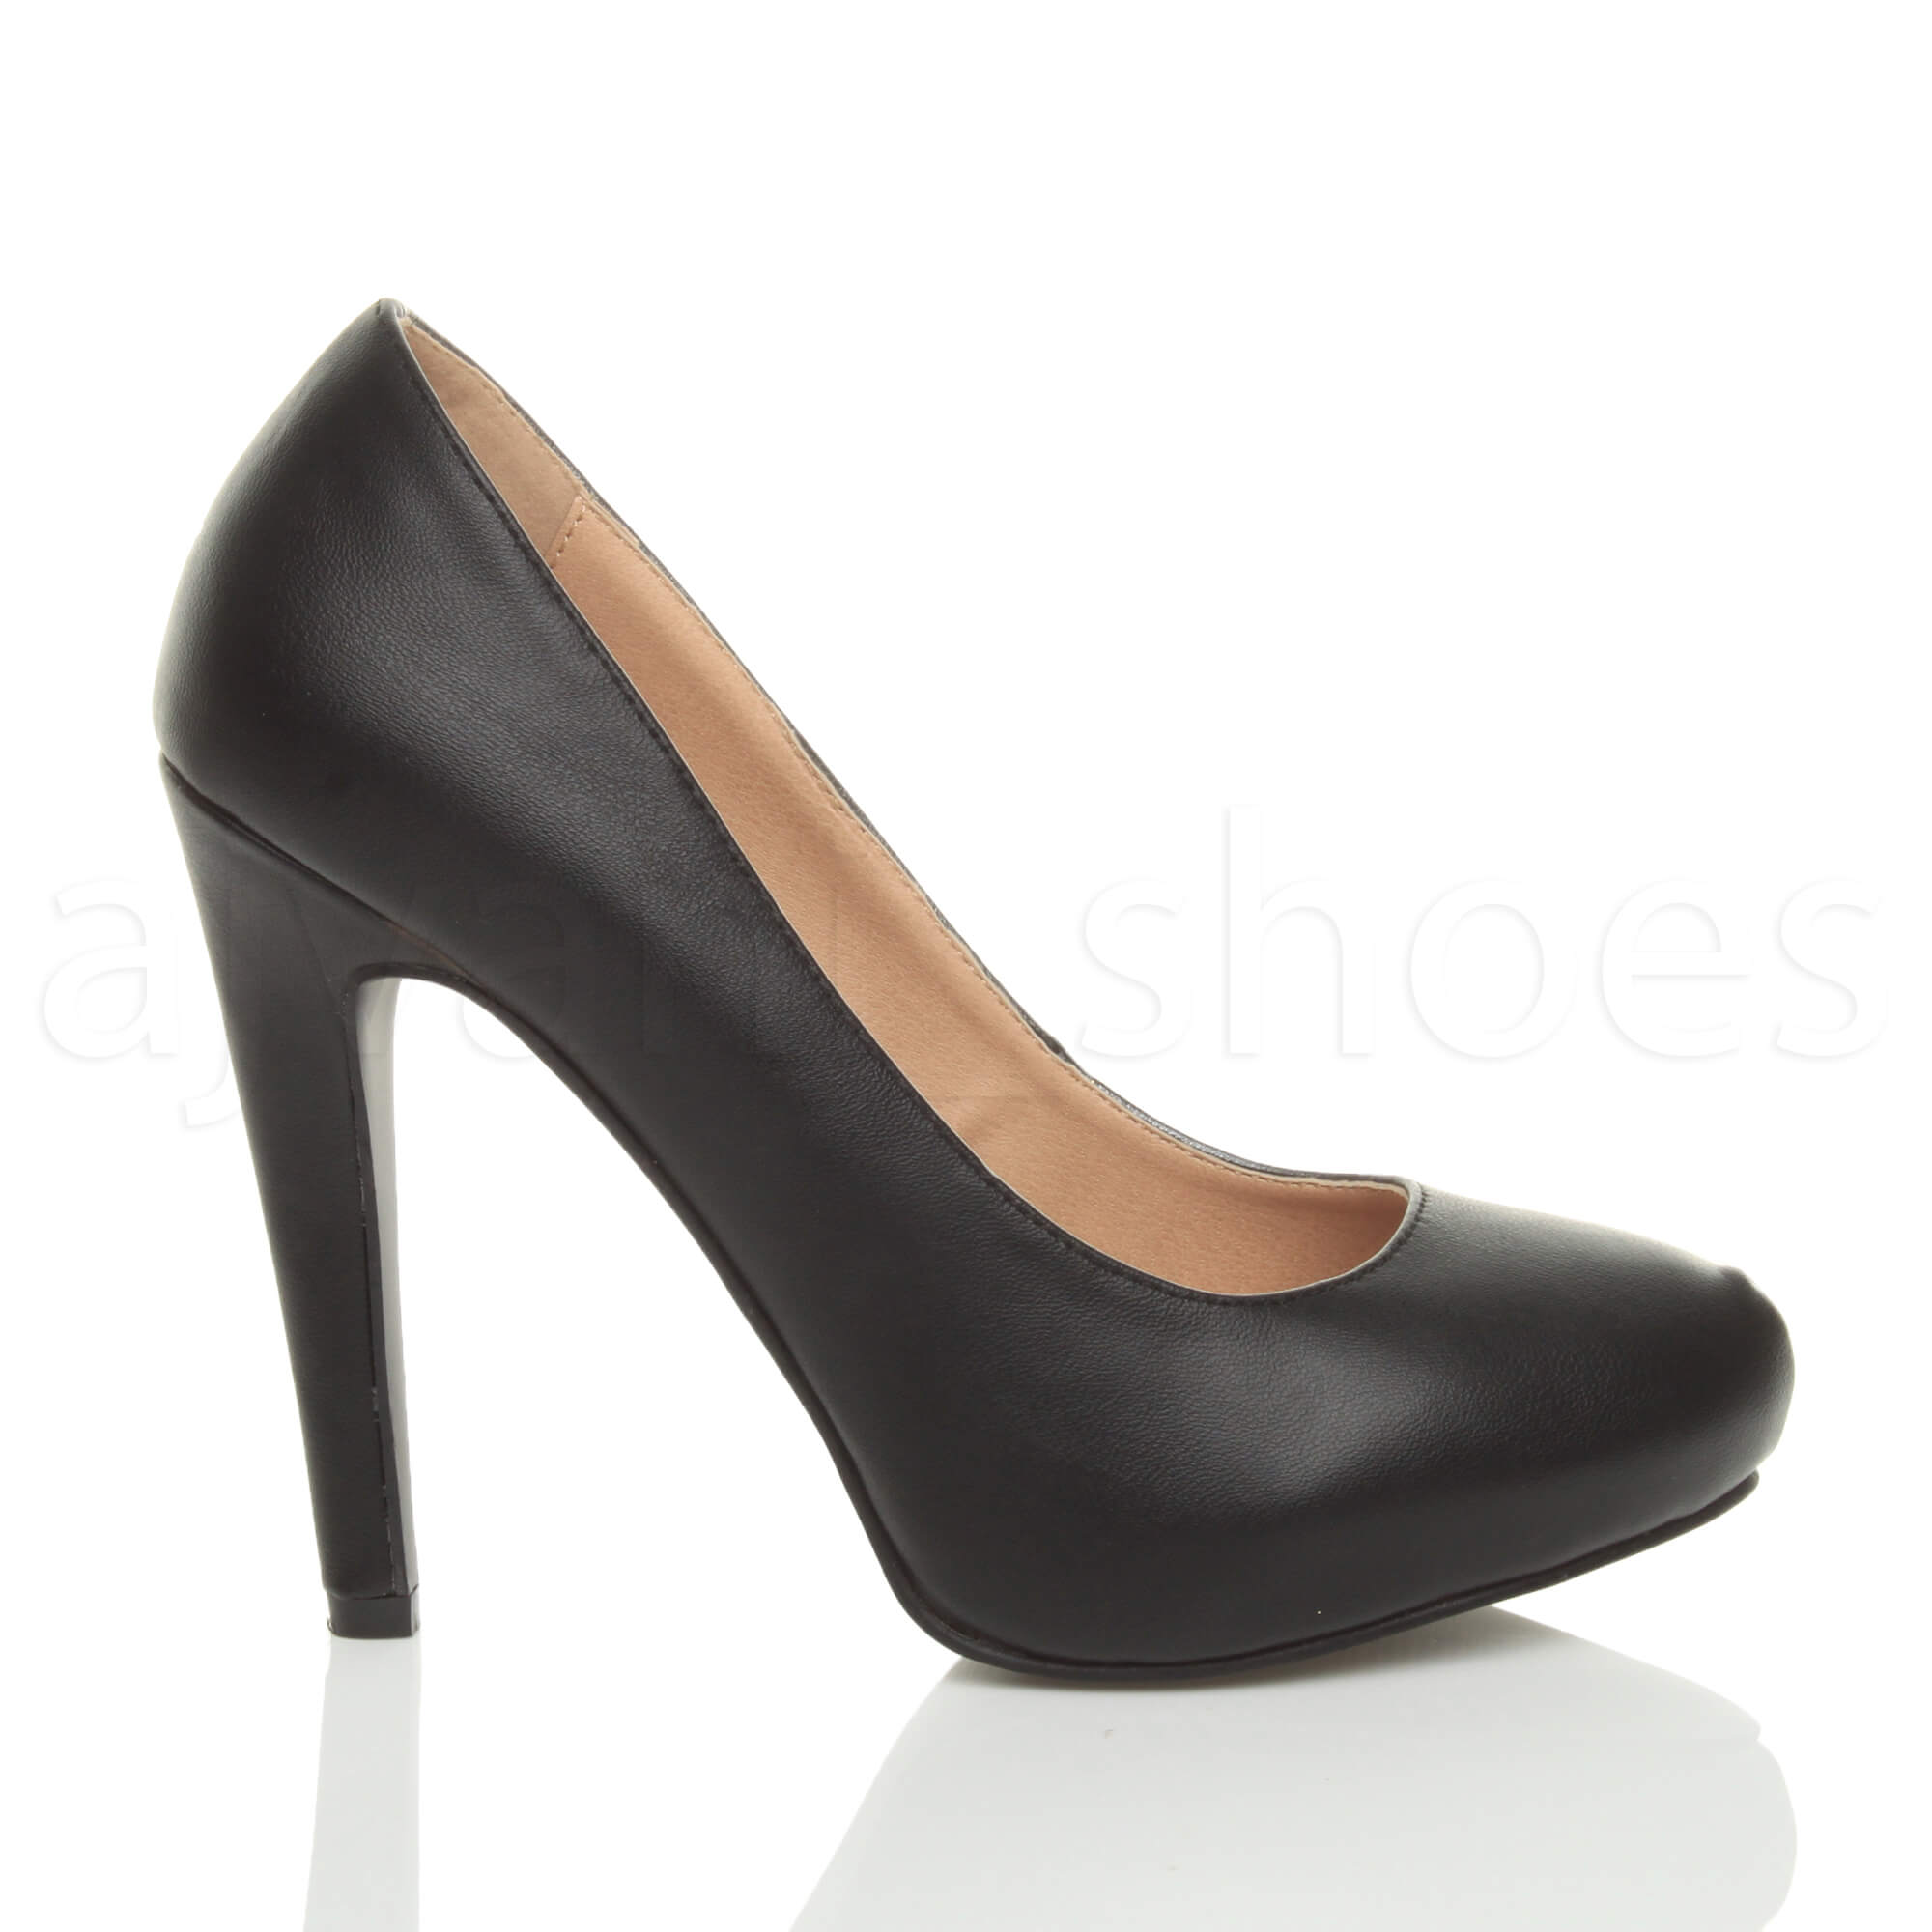 WOMENS-LADIES-HIGH-HEEL-CONCEALED-PLATFORM-COURT-SHOES-PARTY-PROM-PUMPS-SIZE thumbnail 3